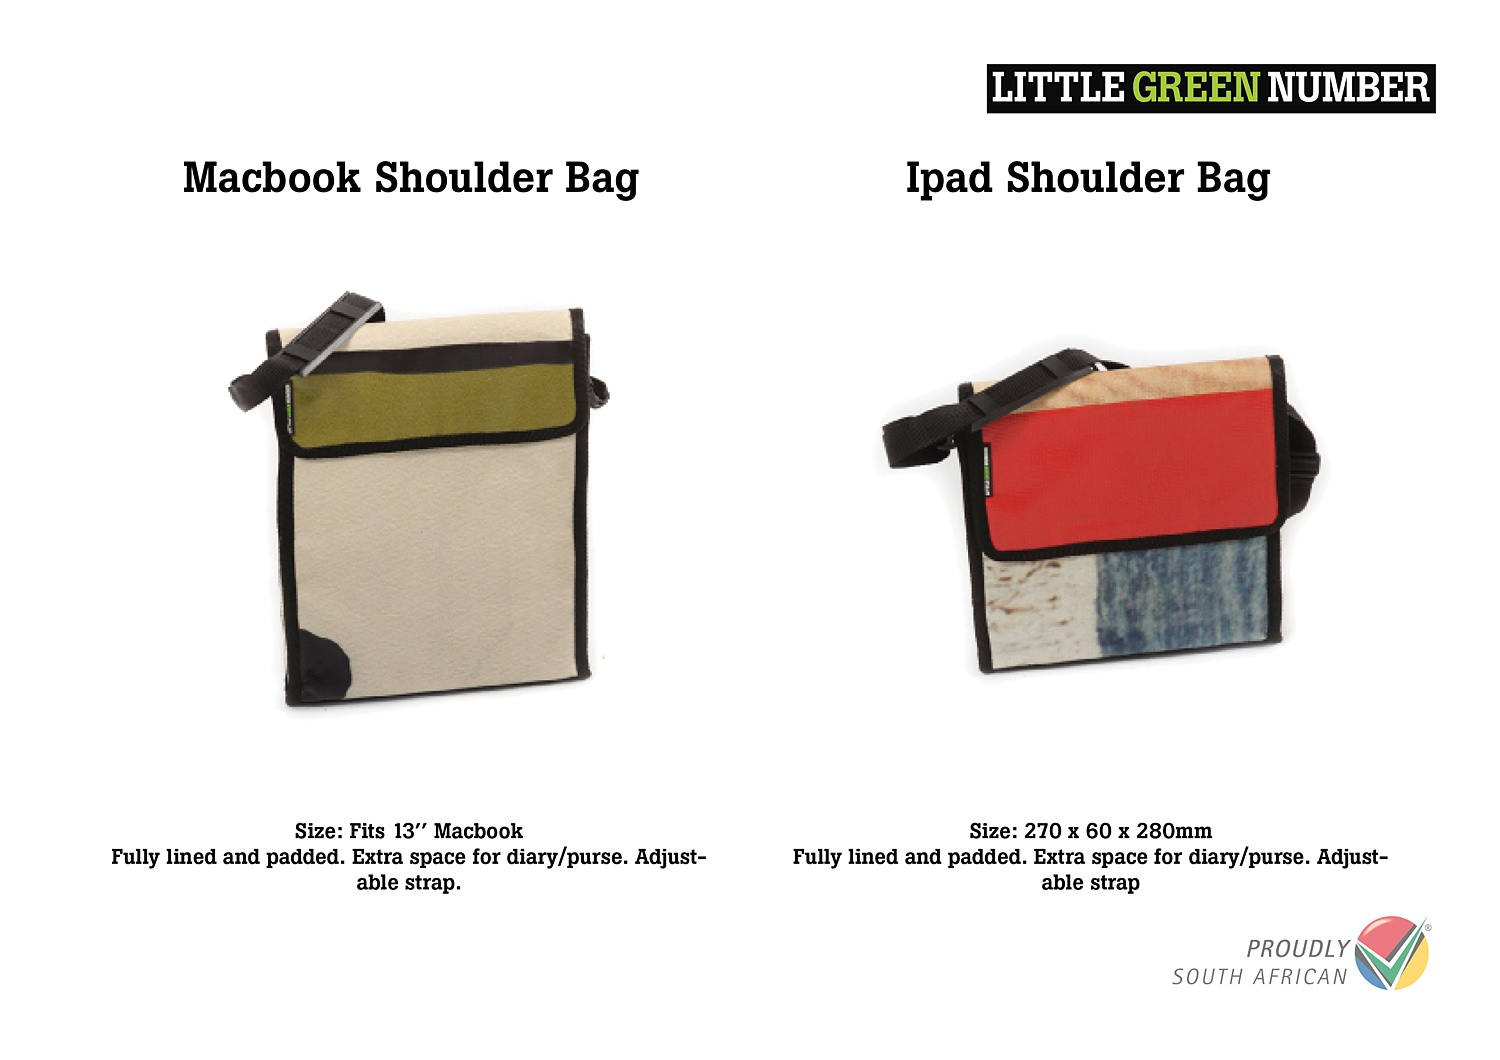 Little Green Number Catalogue Buy1give1 upcycling billboards gauteng21.jpg